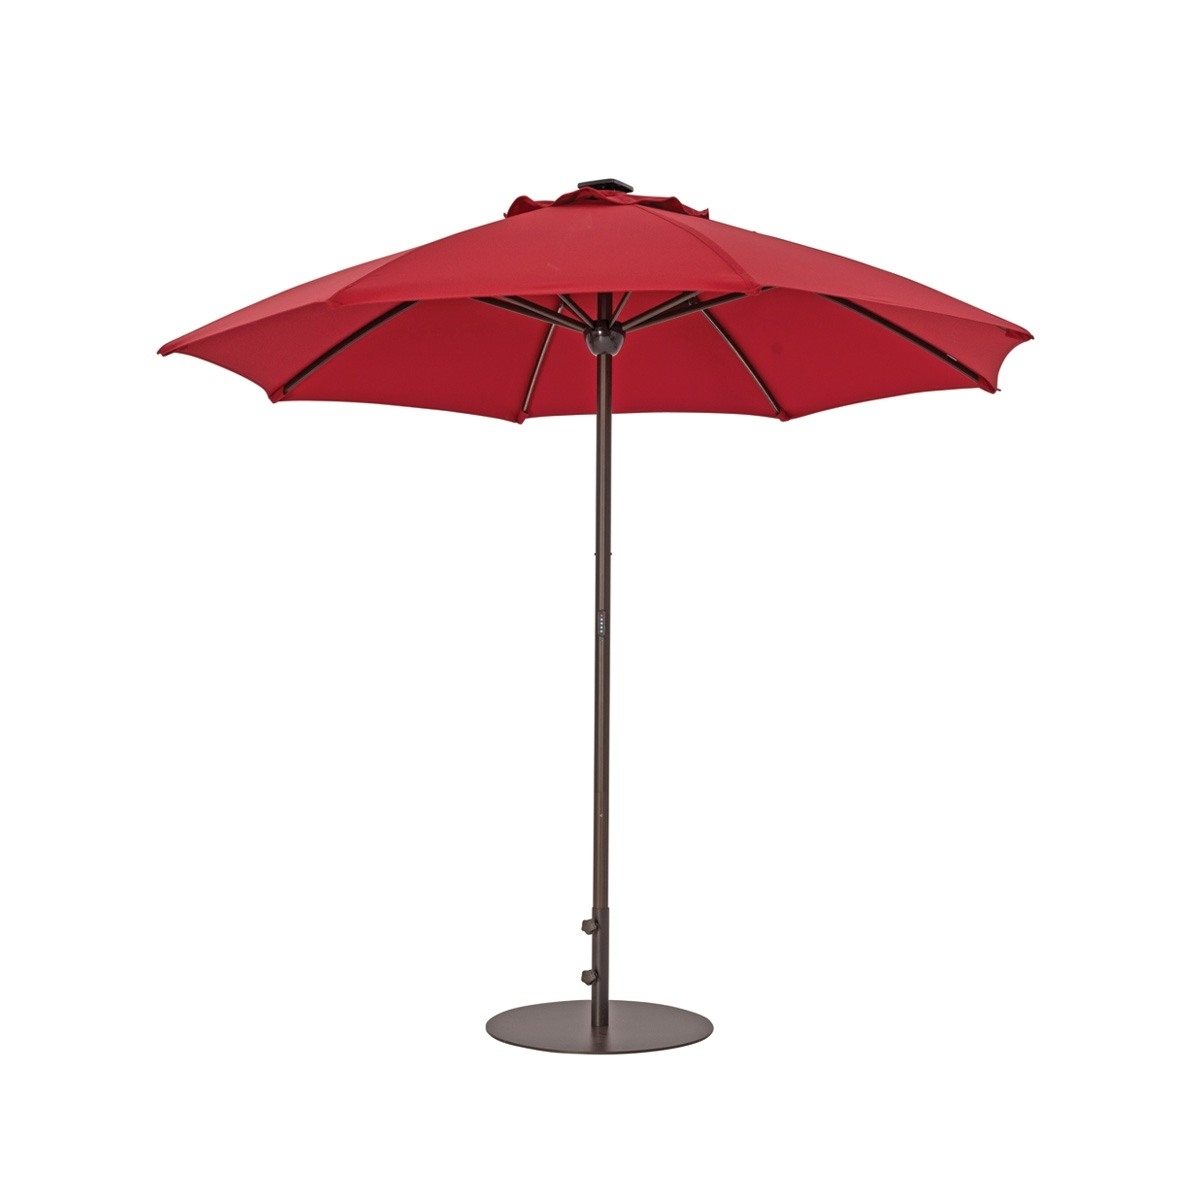 Patio Umbrellas With Solar Lights (View 13 of 20)